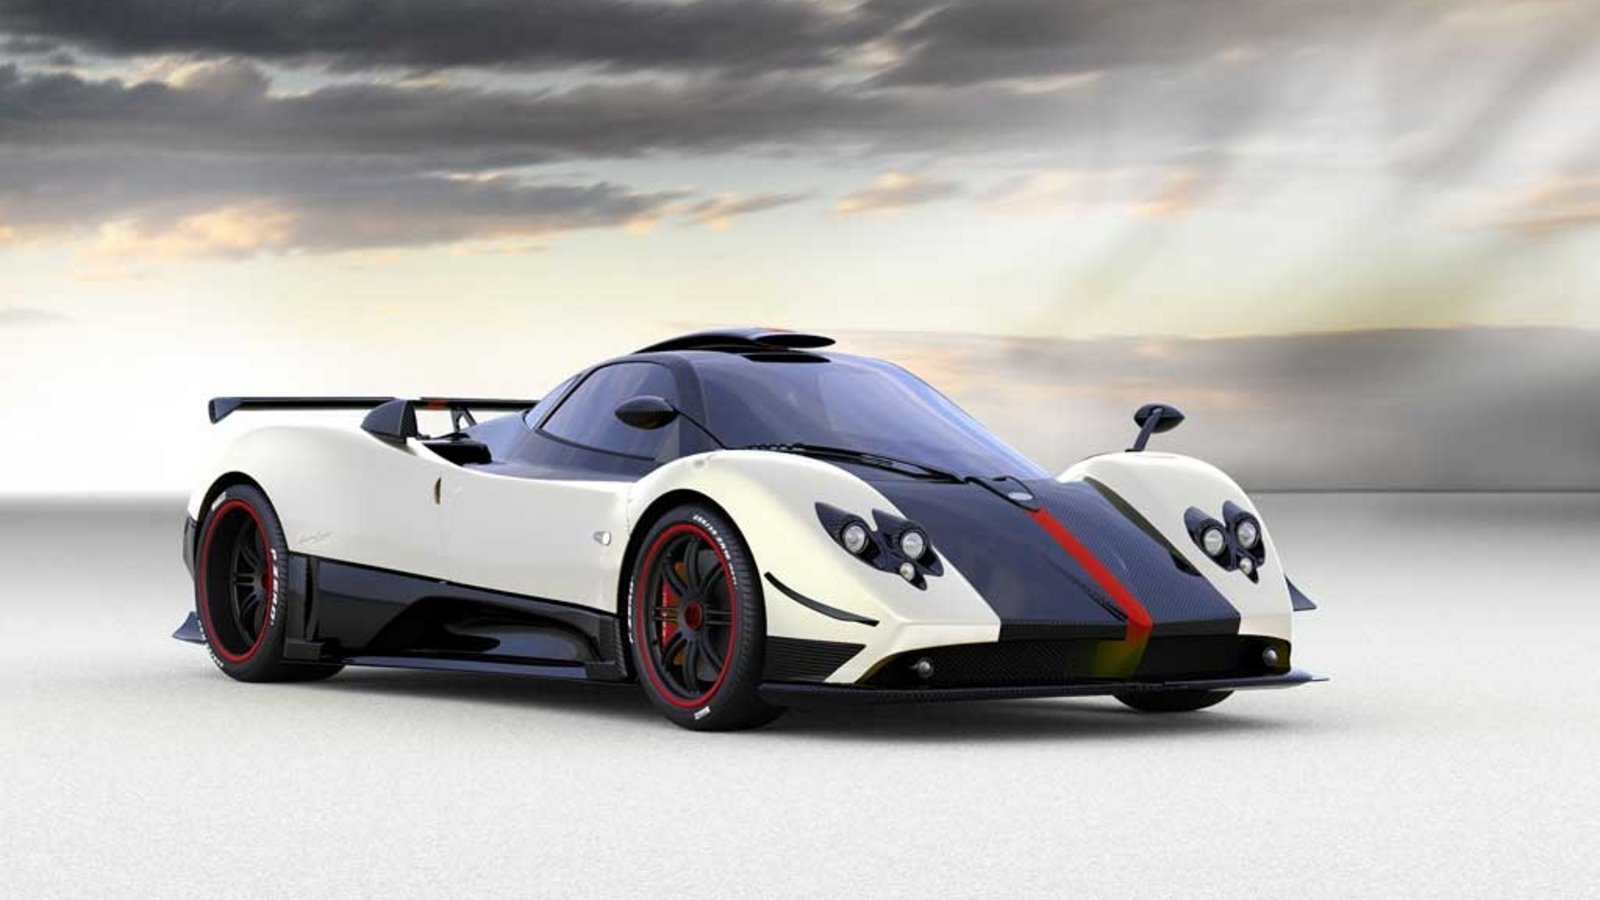 Pagani Zonda News And Reviews | Top Sd